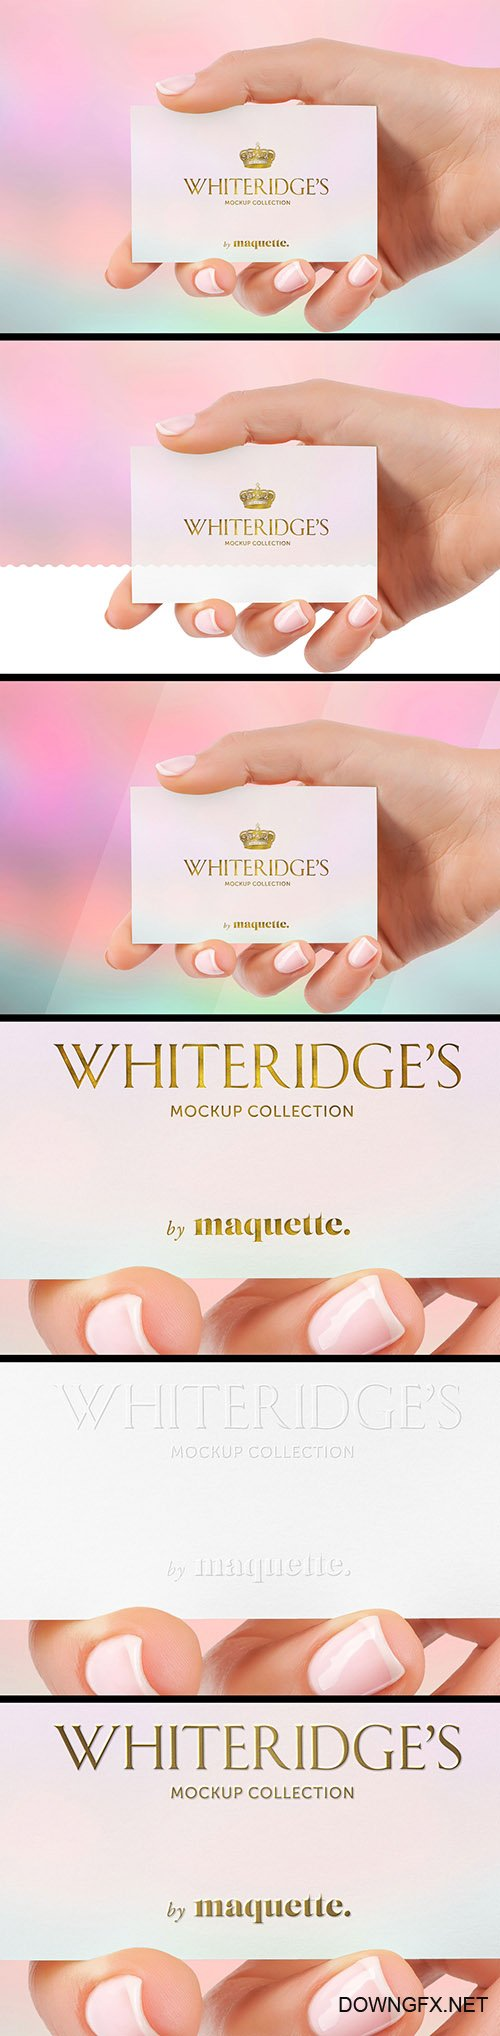 Hand with Gold-Embossed Business Card Mockup 15 130438116 PSDT